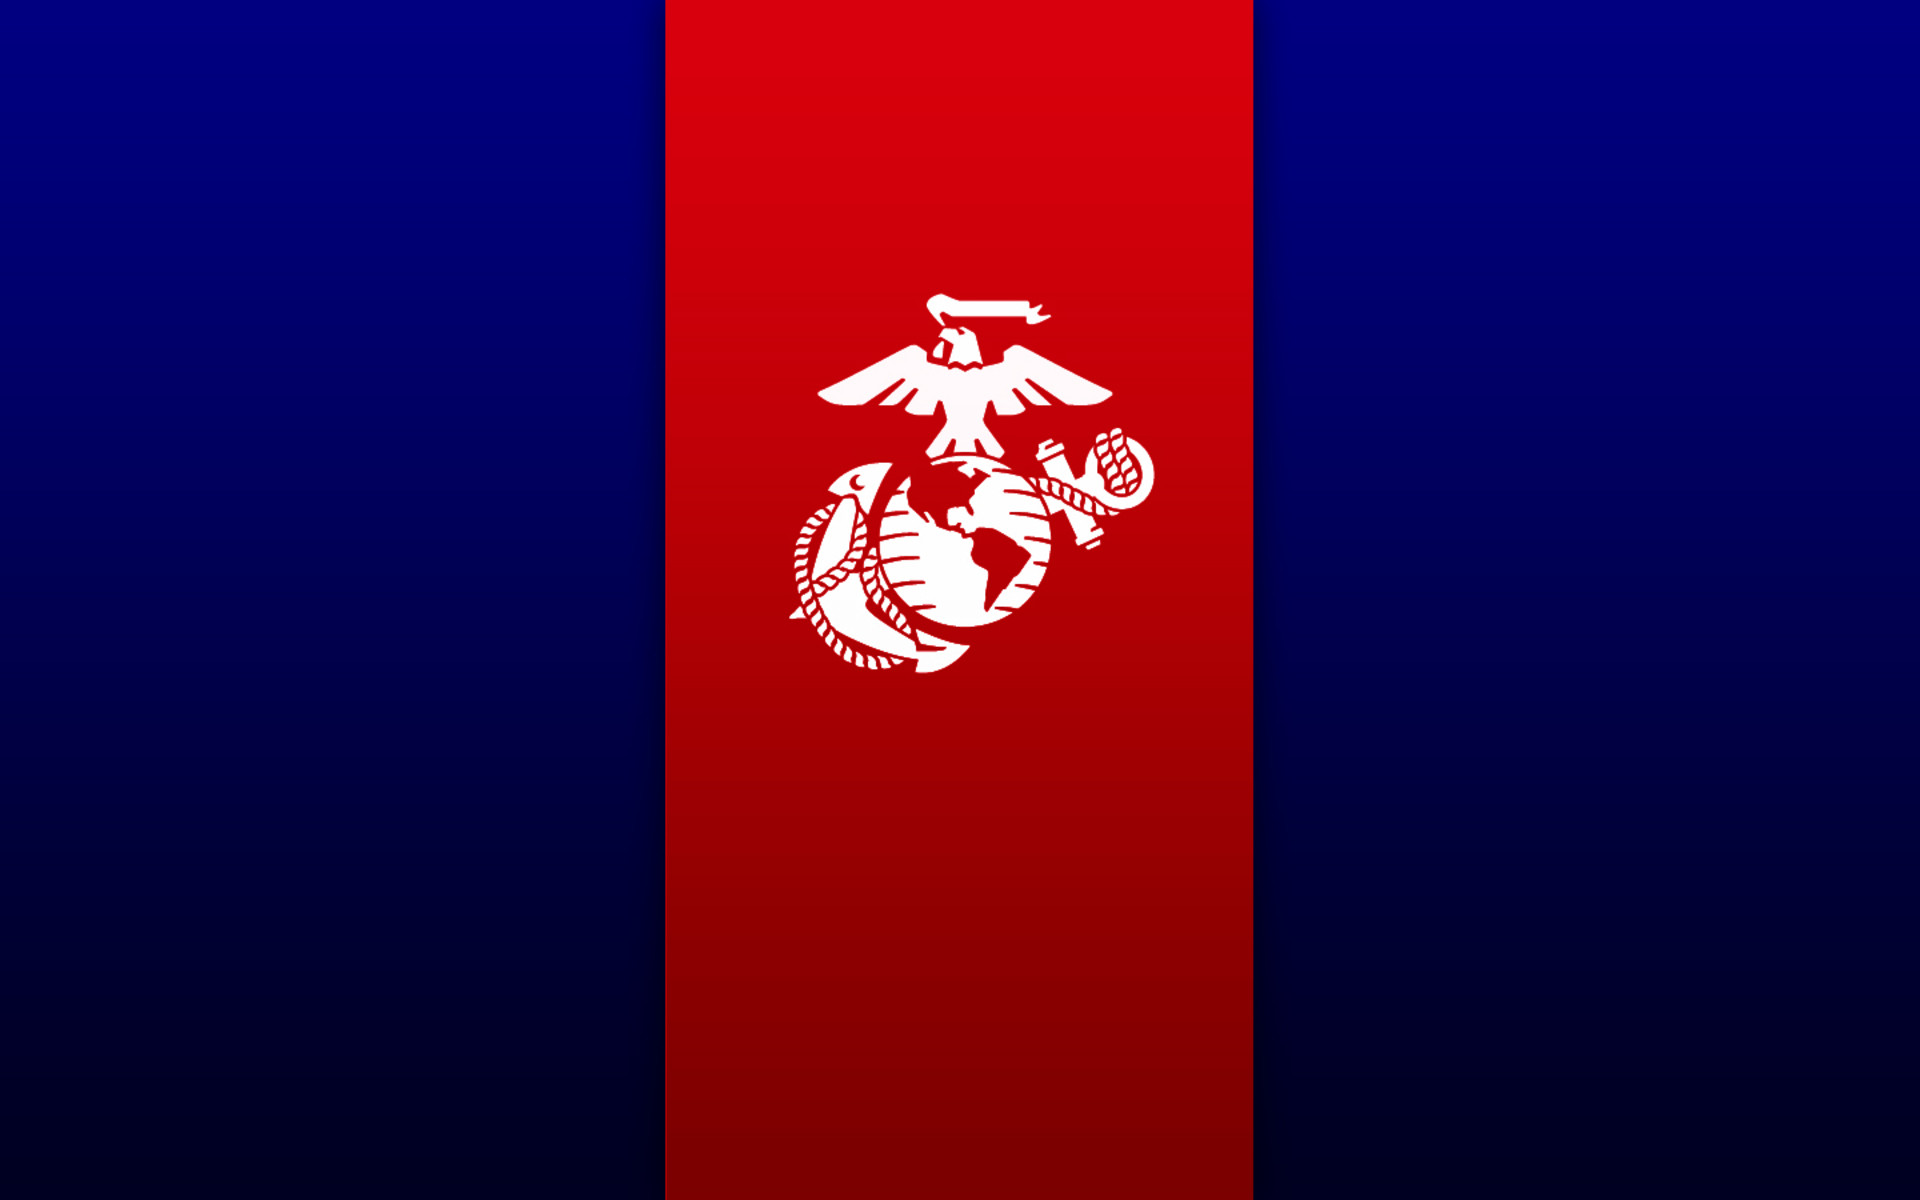 1920×1440 Px HD Desktop Wallpaper : Wallpapers Usmc Red And Blue Background